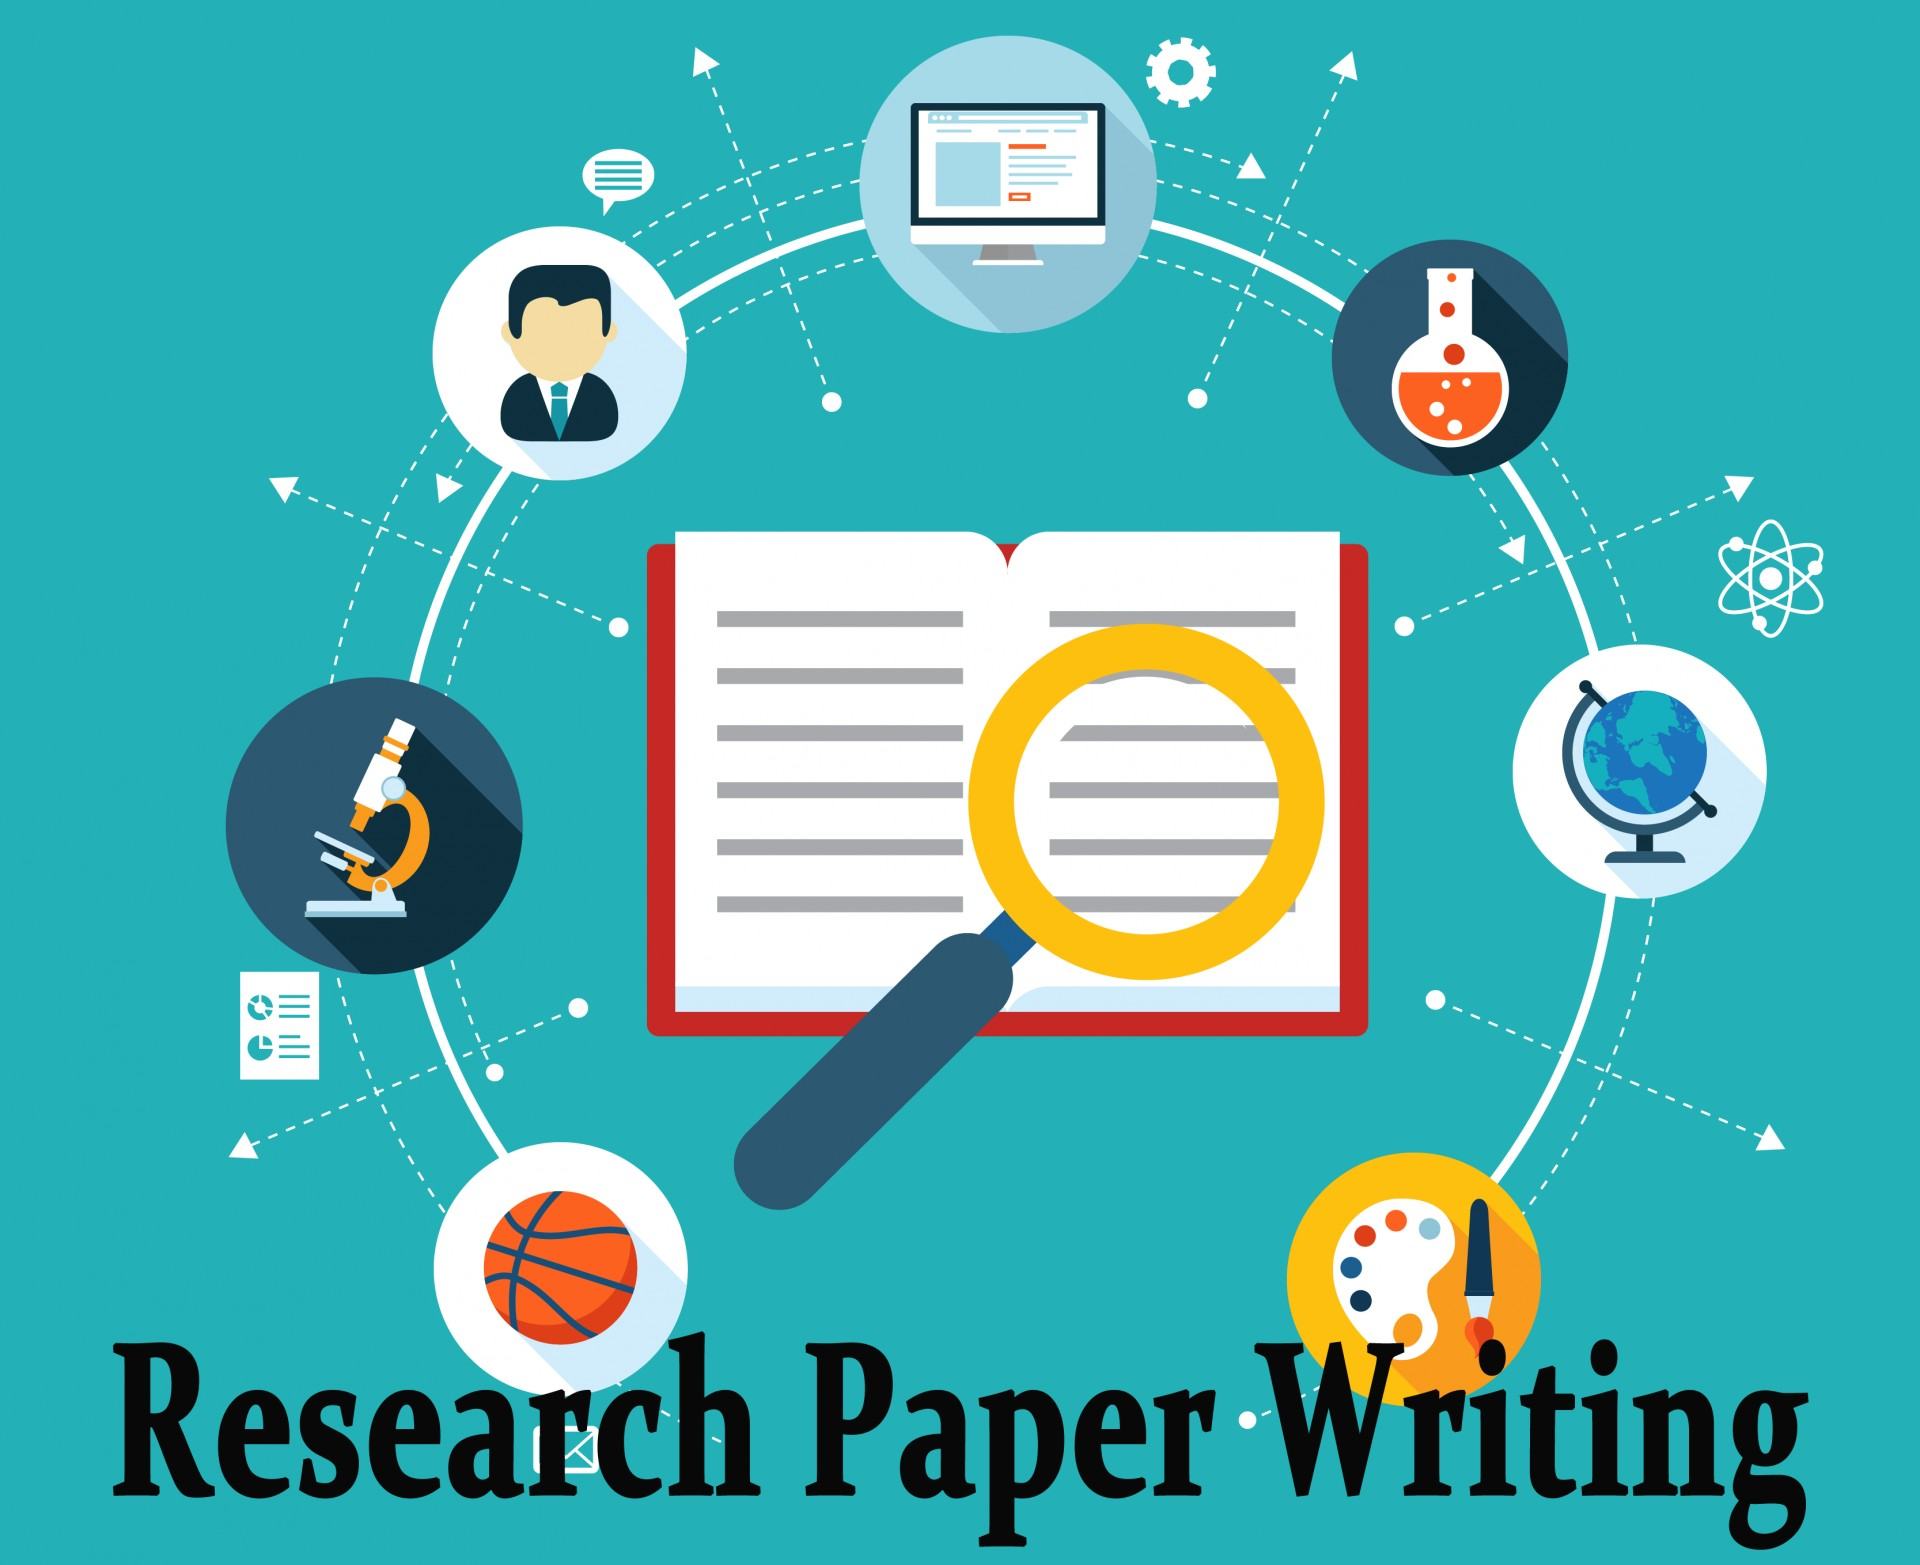 005 Research Paper Need Help Writing 503 Effective Rare My For 1920